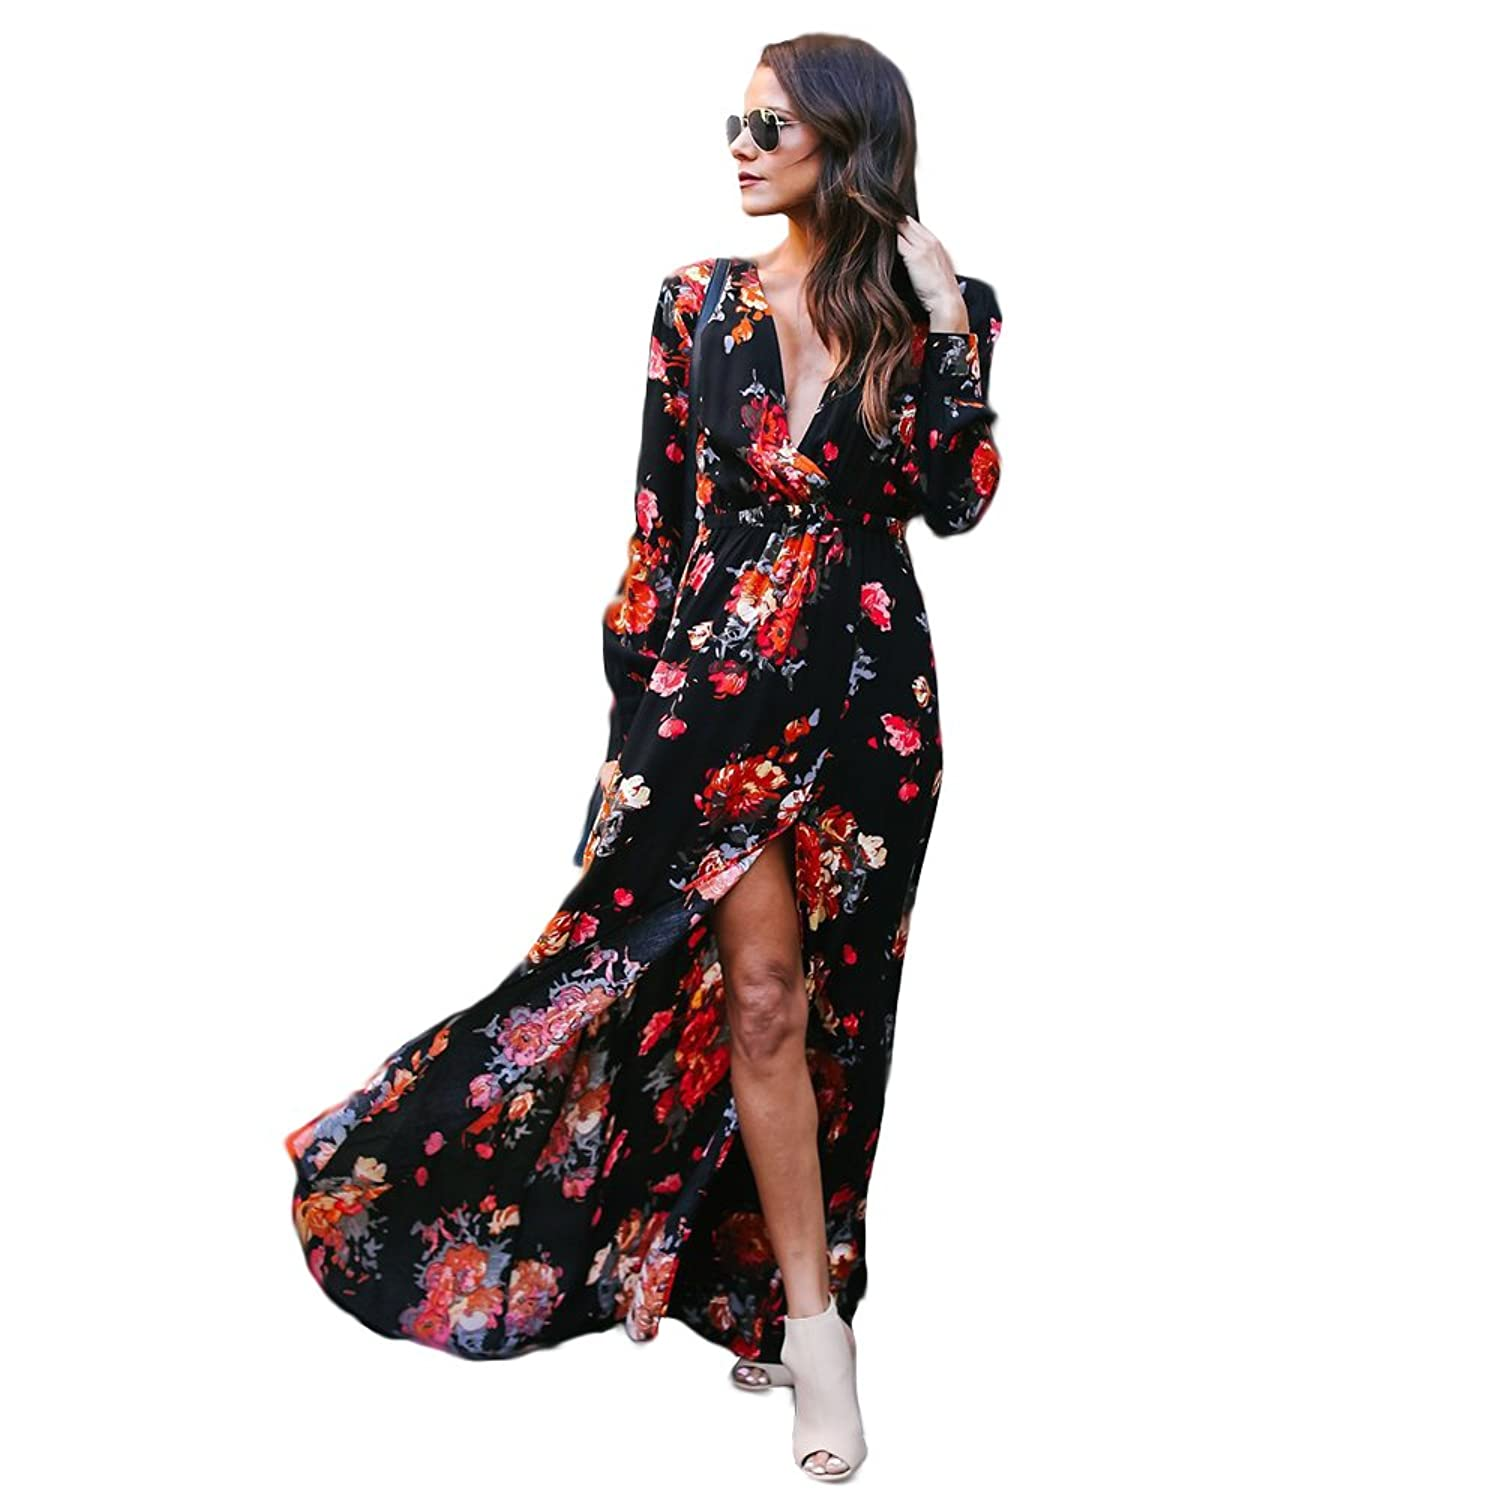 2305476b79ae Pull On closure. FEATURES:Bohemia flower printed ,sexy front slit , Elastic  empire hight waist ,long sleeve , with linings .very swing and flatter dress .